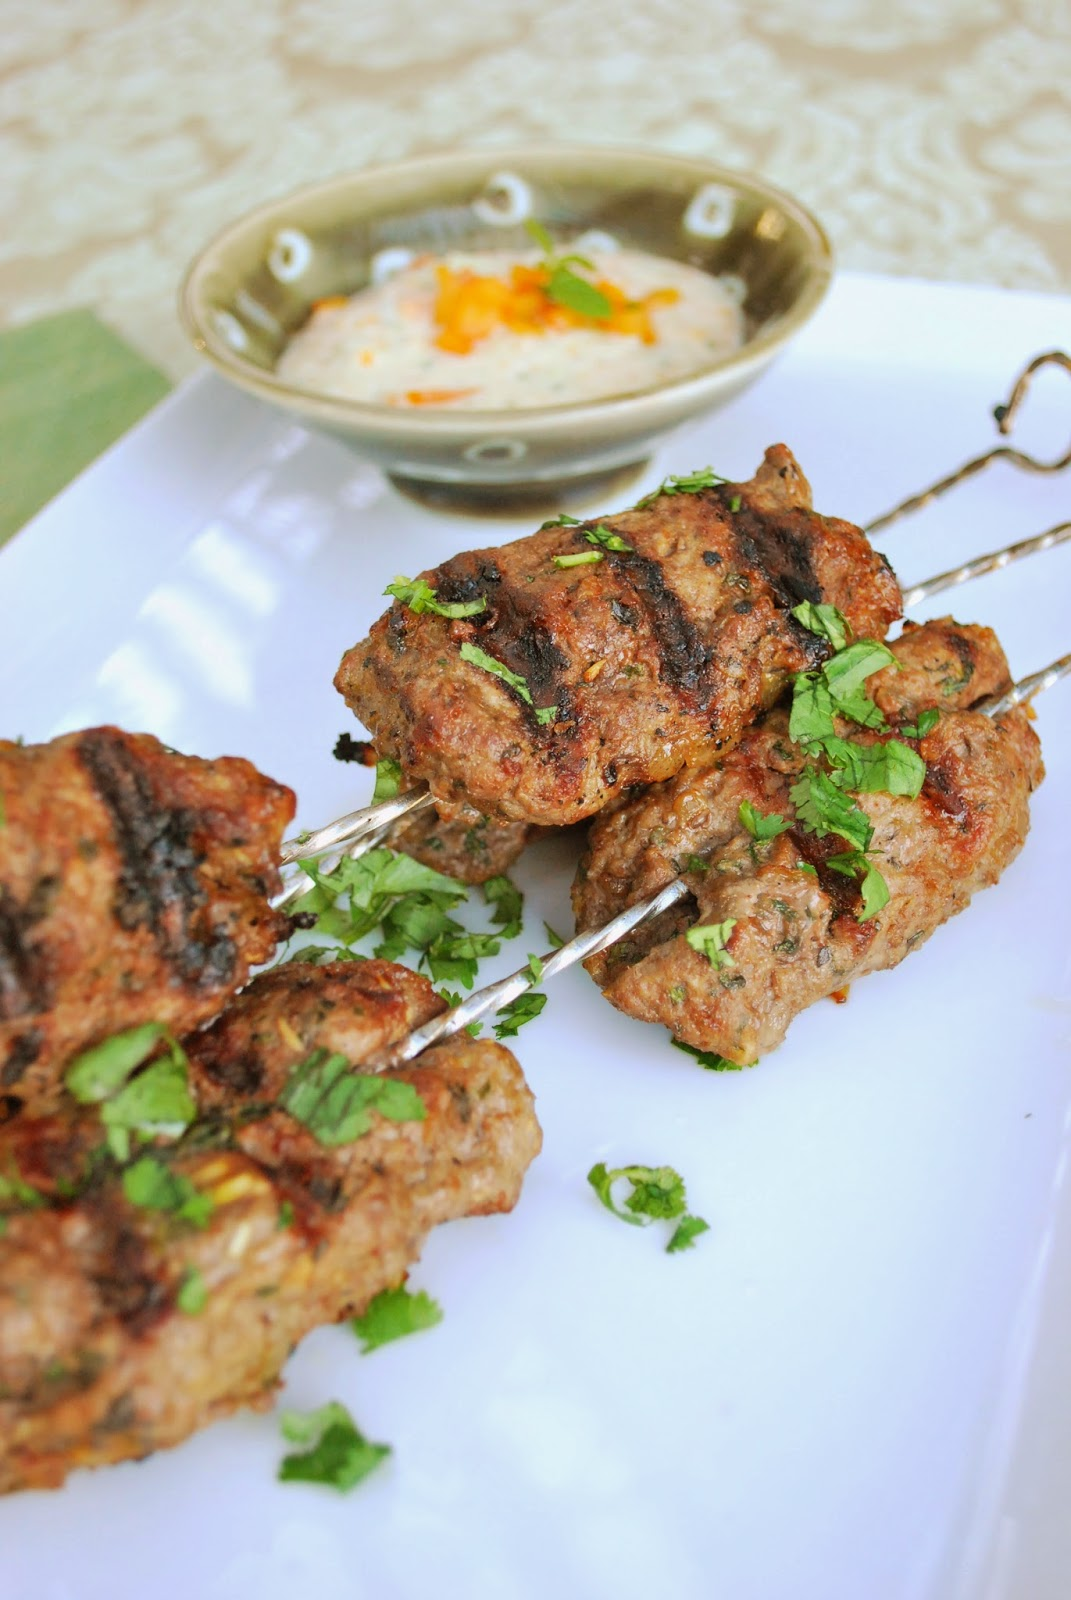 Lamb Kebabs with Sweet Pepper Cucumber Raita: These simple, yet flavorful lamb kebobs paired with raita are great for serving at a party or make for a fun dinner at home.